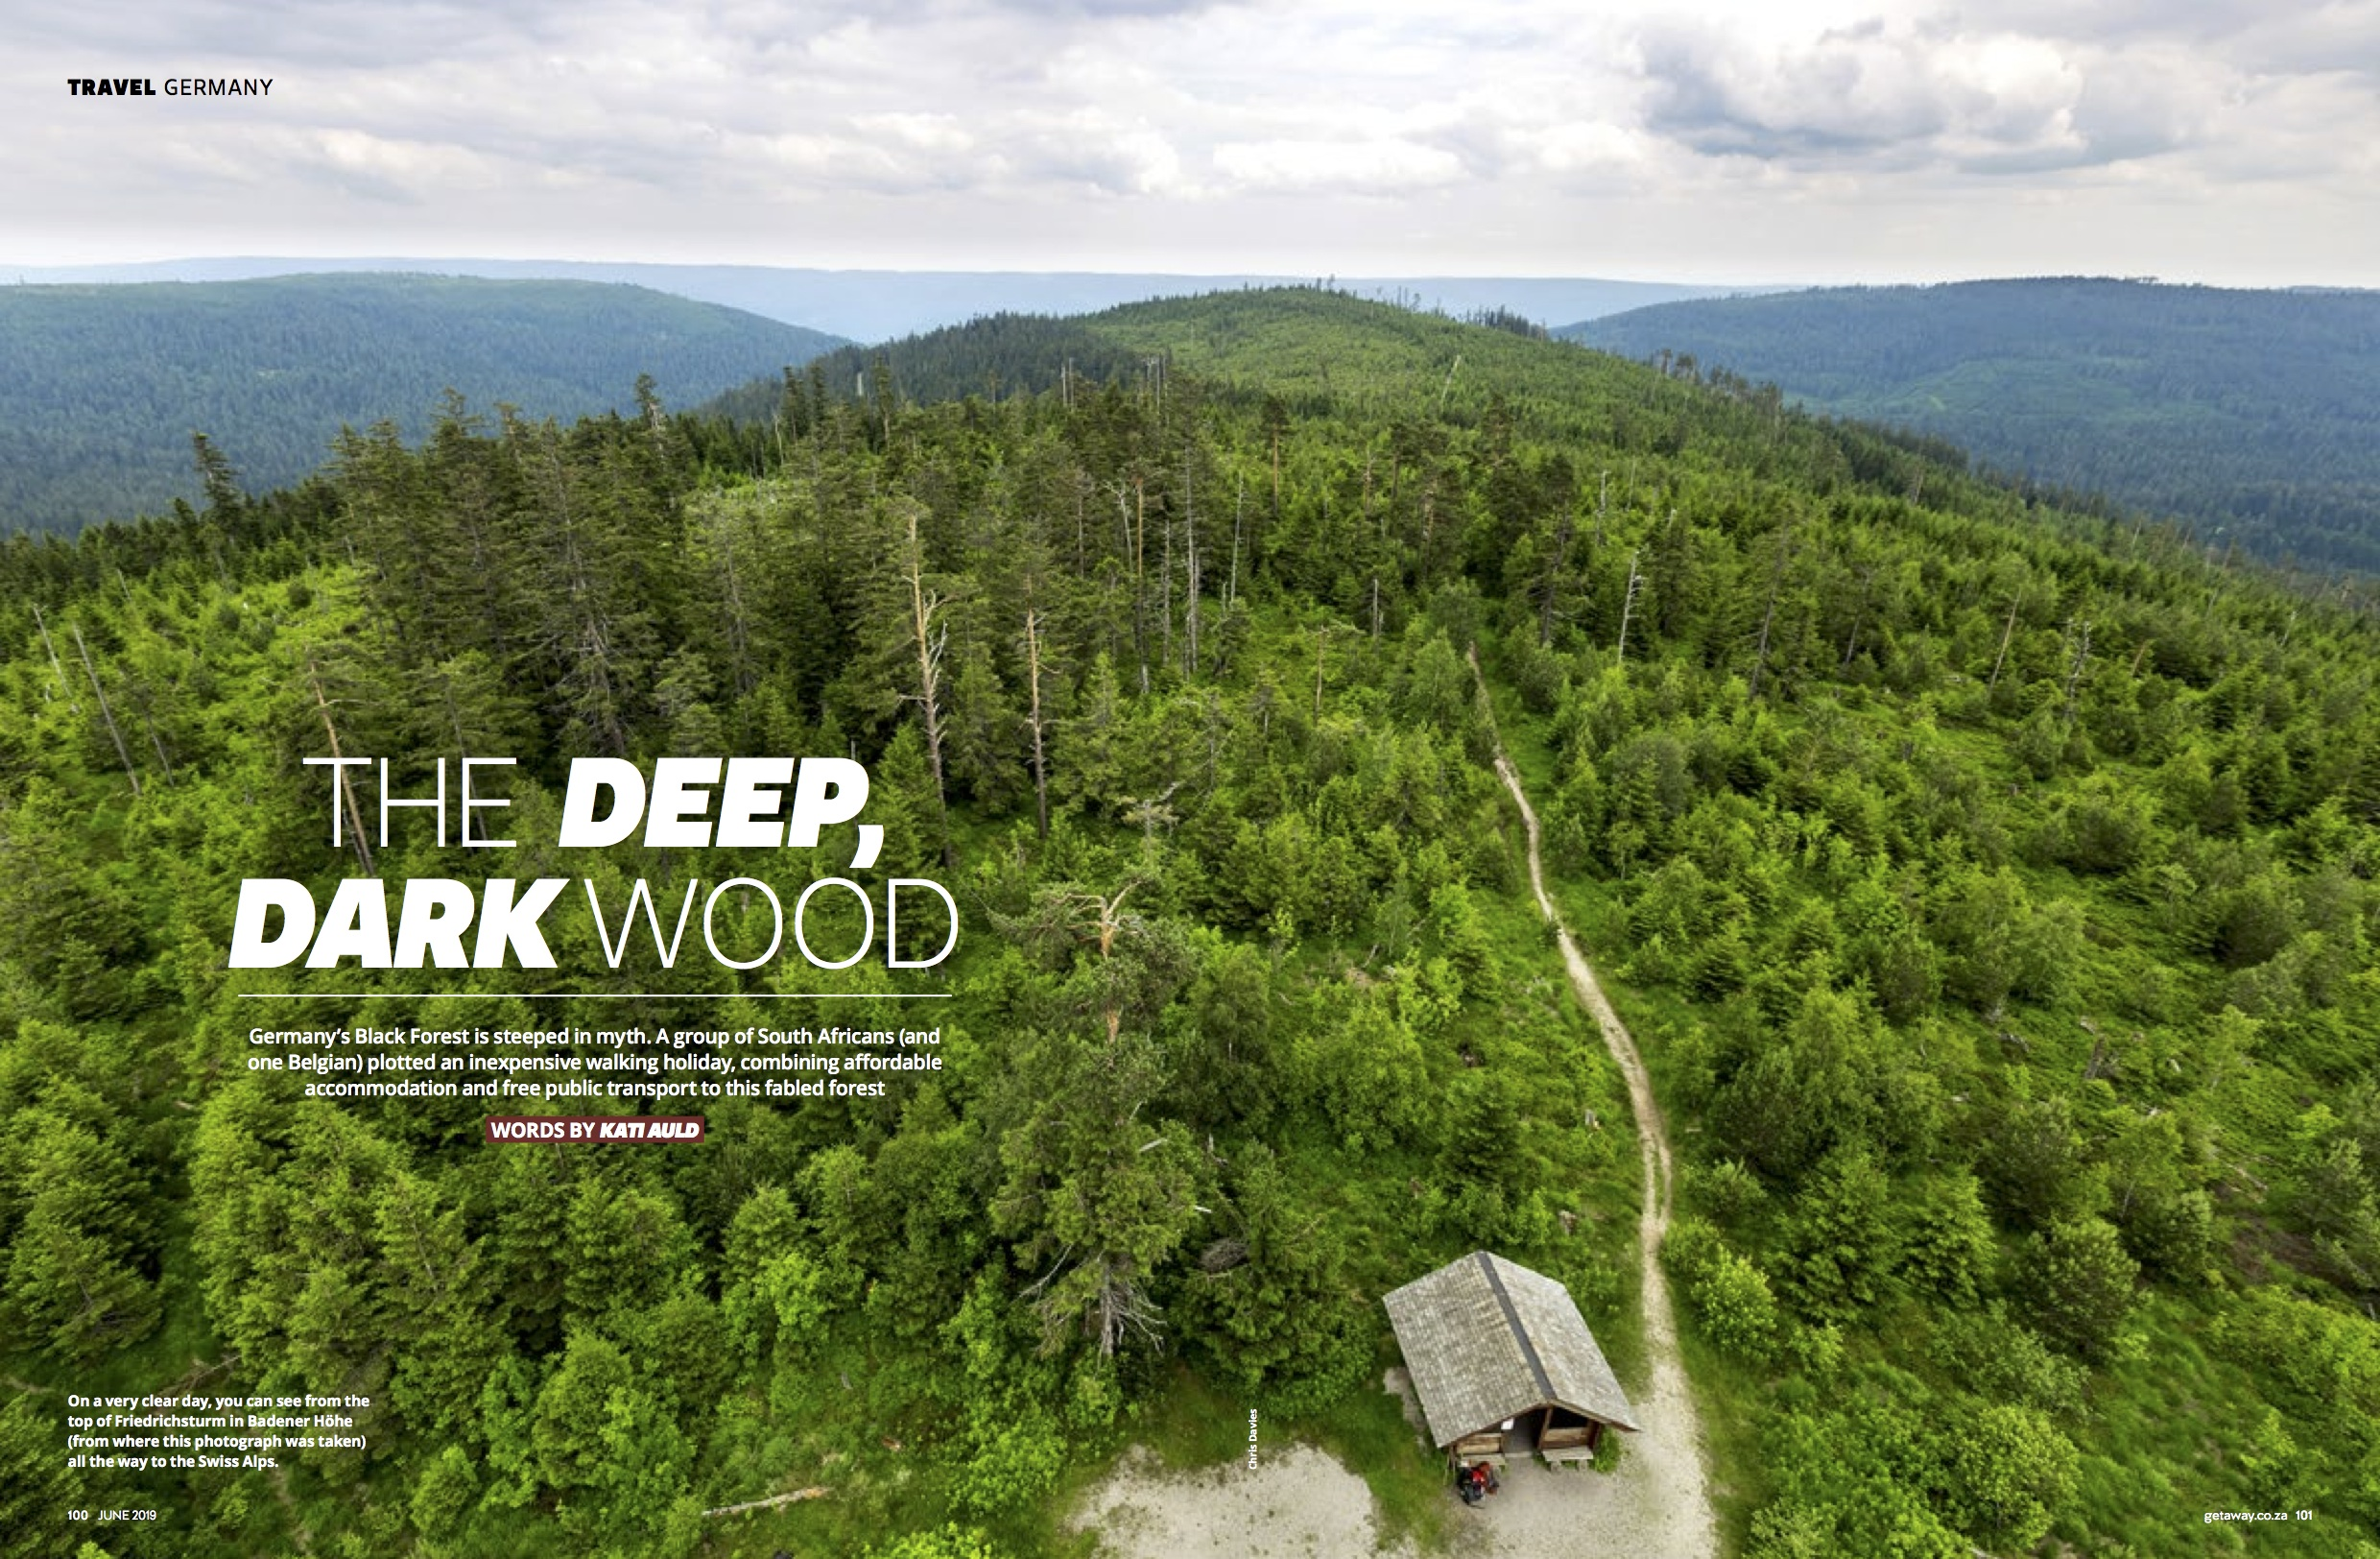 Hiking in the Black Forest - Published June 2019, Getaway magazineGermany's Black Forest is steeped in myth. A group of South Africans (and one Belgian) plotted an inexpensive walking holiday, combining affordable accommodation and free public transport to this fabled forest.